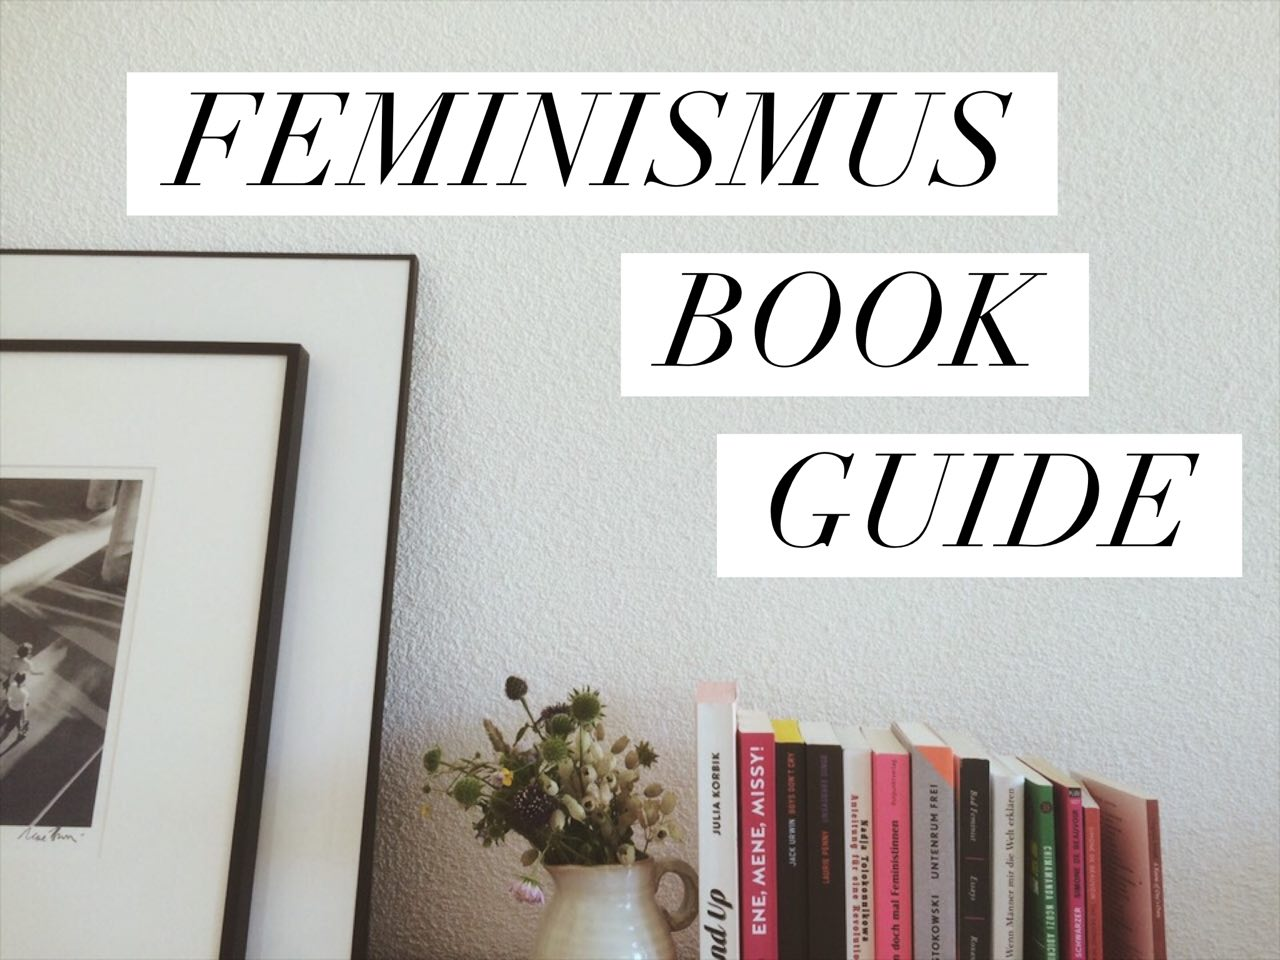 unser feminismus book guide